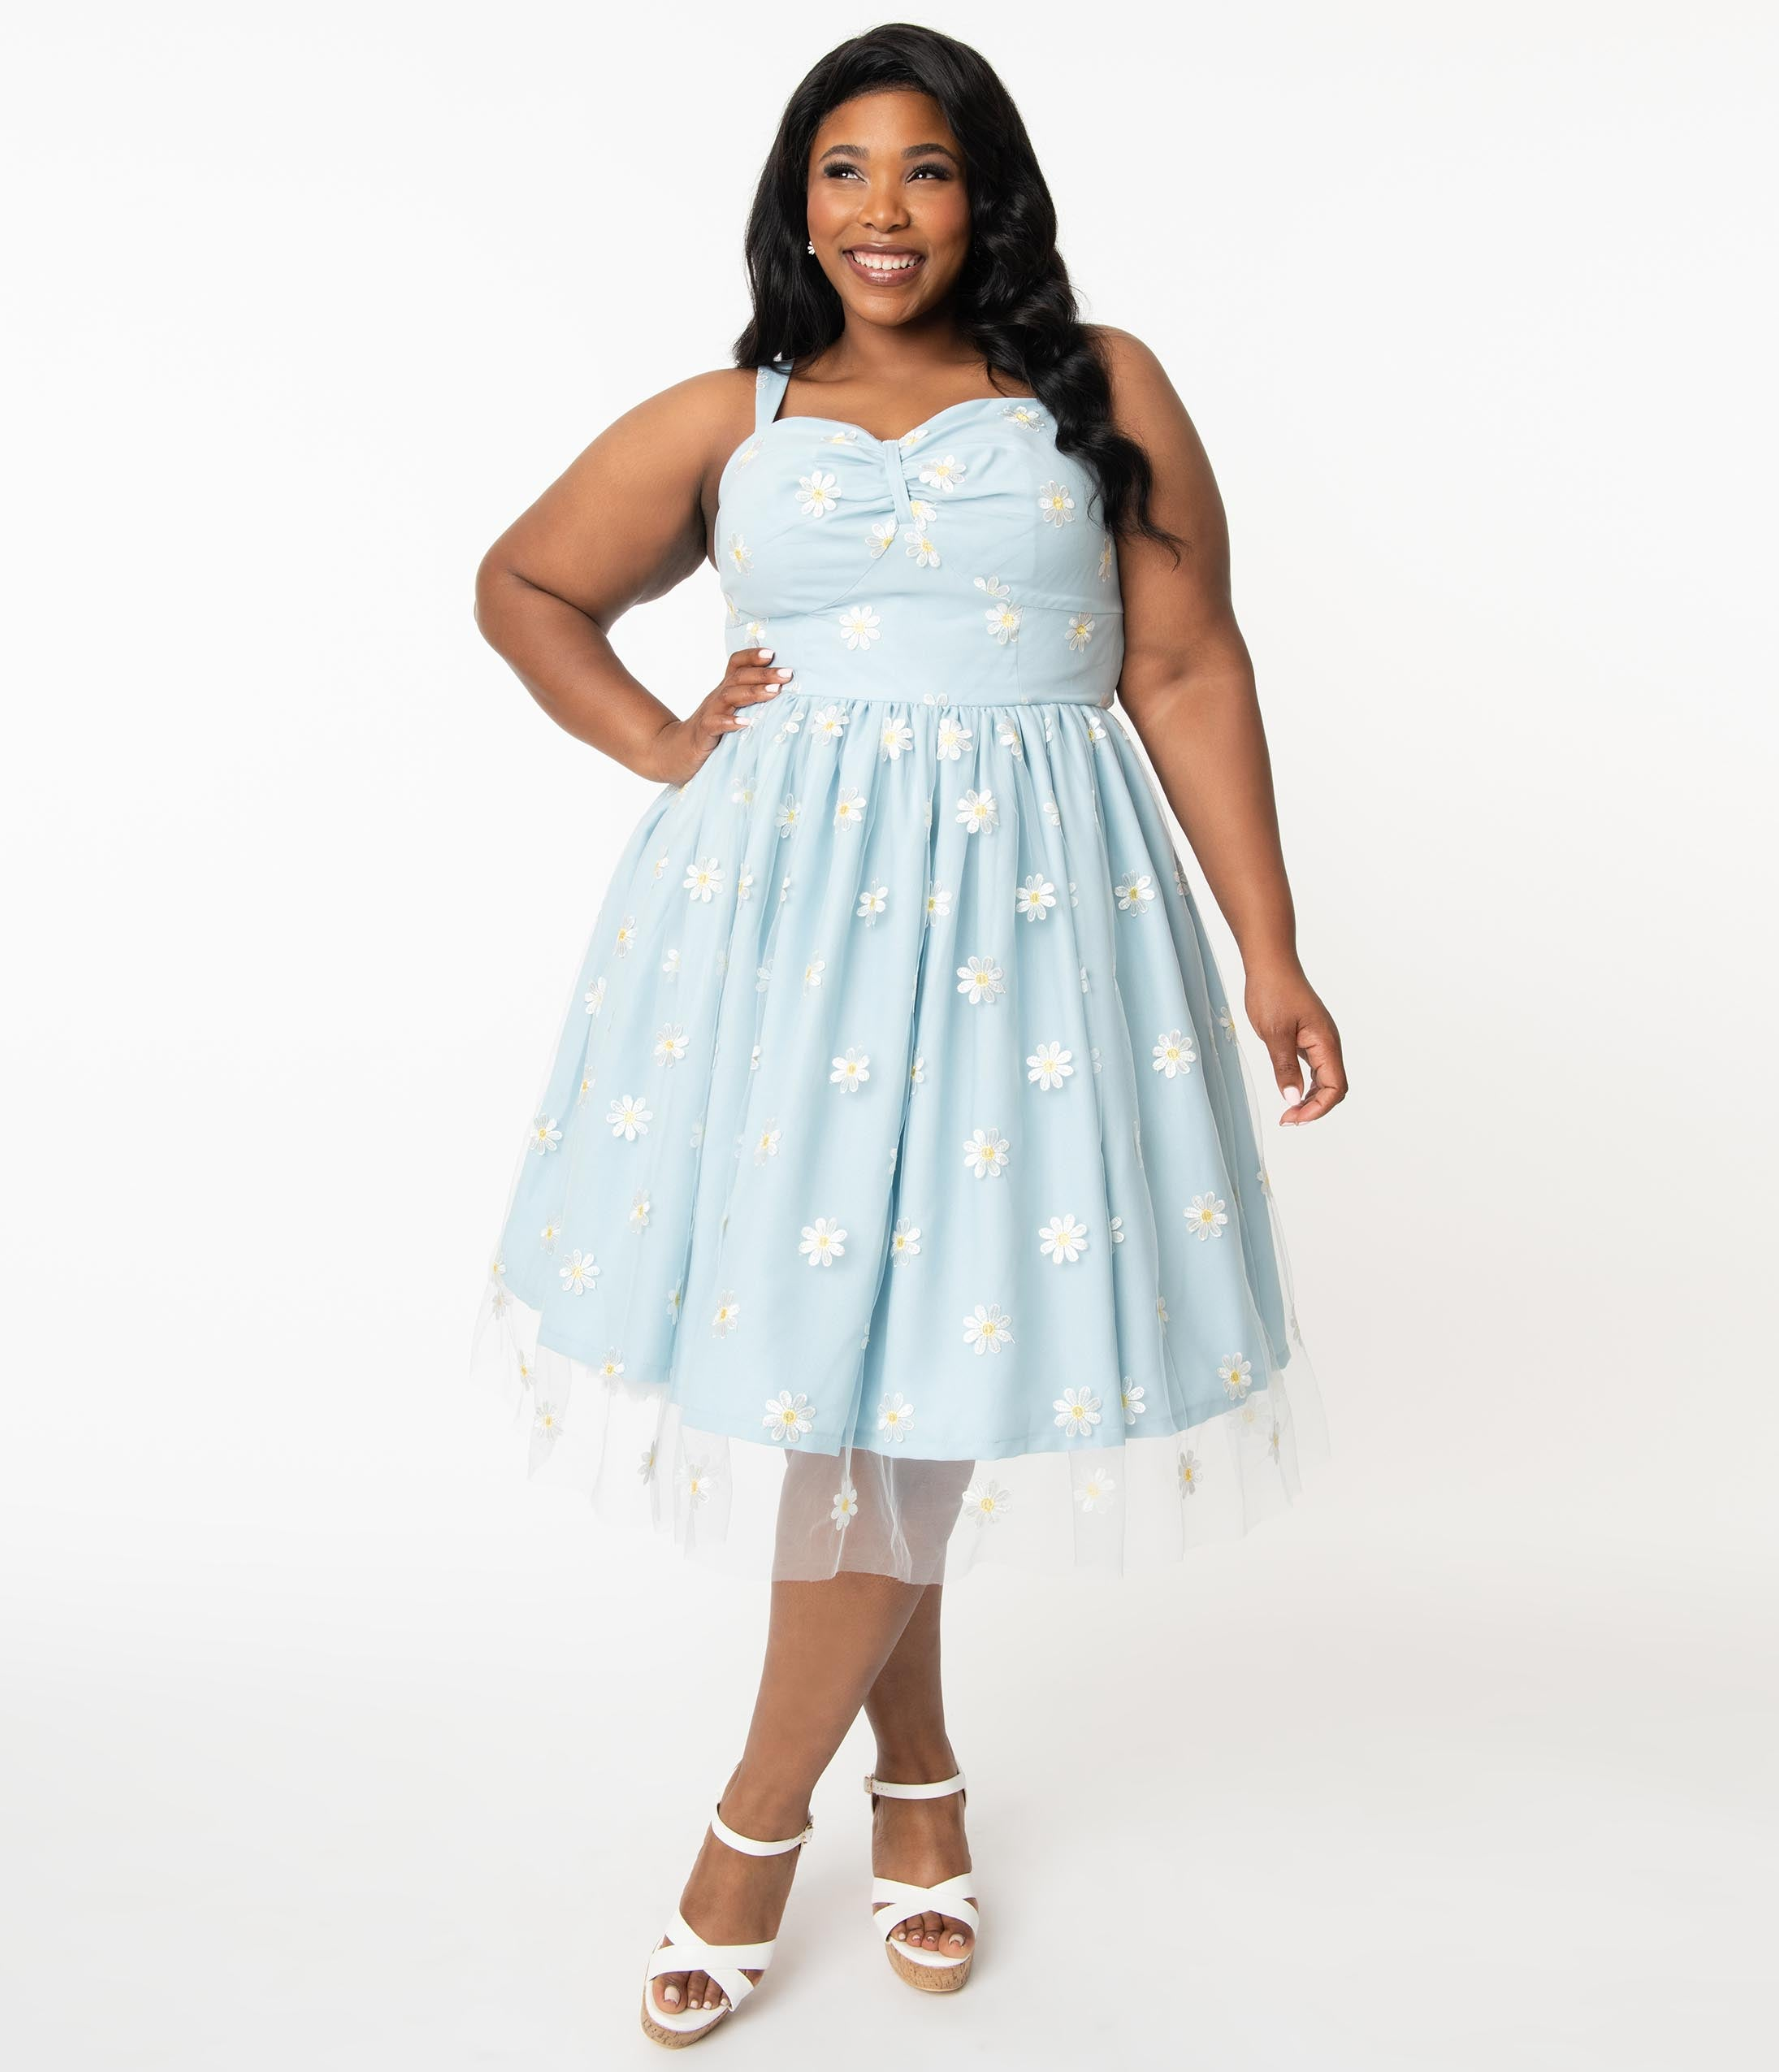 1950s Plus Size Dresses, Swing Dresses Plus Size Light Blue  Daisy Floral Mesh Monica Swing Dress $118.00 AT vintagedancer.com